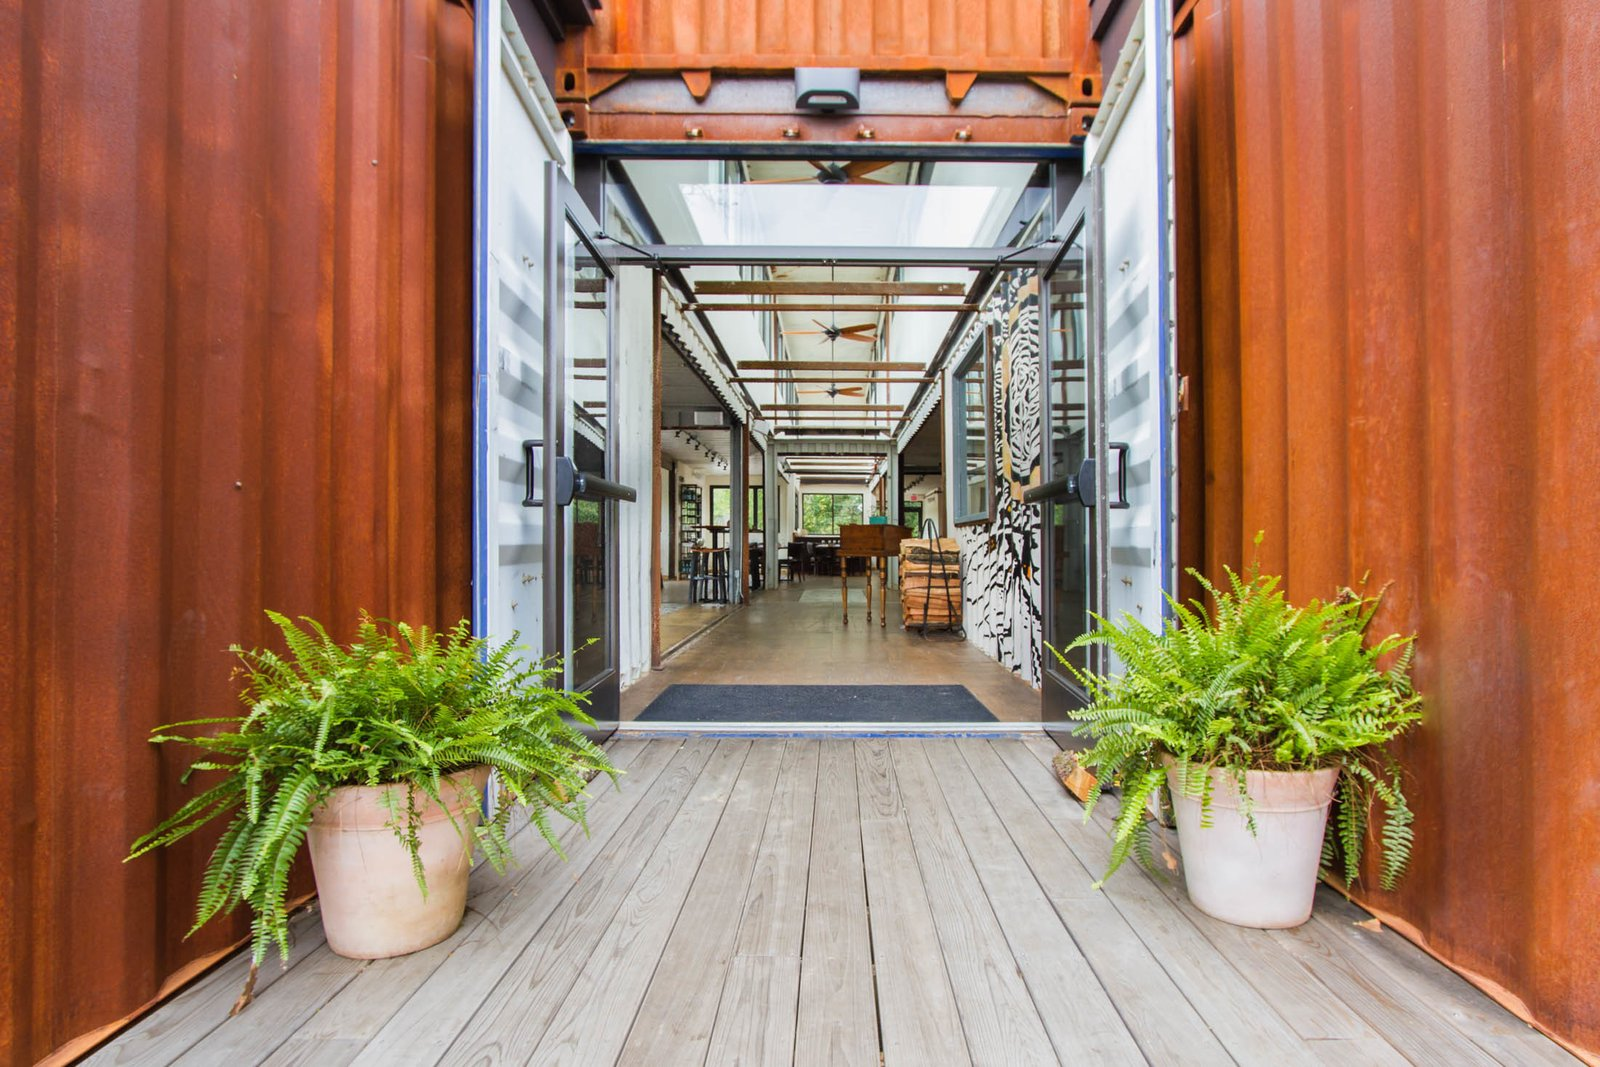 """""""We wanted it to feel open and spacious,"""" Alexander said. Much of the work on the containers was completed off-site by SG Blocks, and then delivered for construction. It's clad in Cor-Ten weathering seel.  A Restaurant Constructed from 19 Salvaged Shipping Containers by Kelly Dawson"""